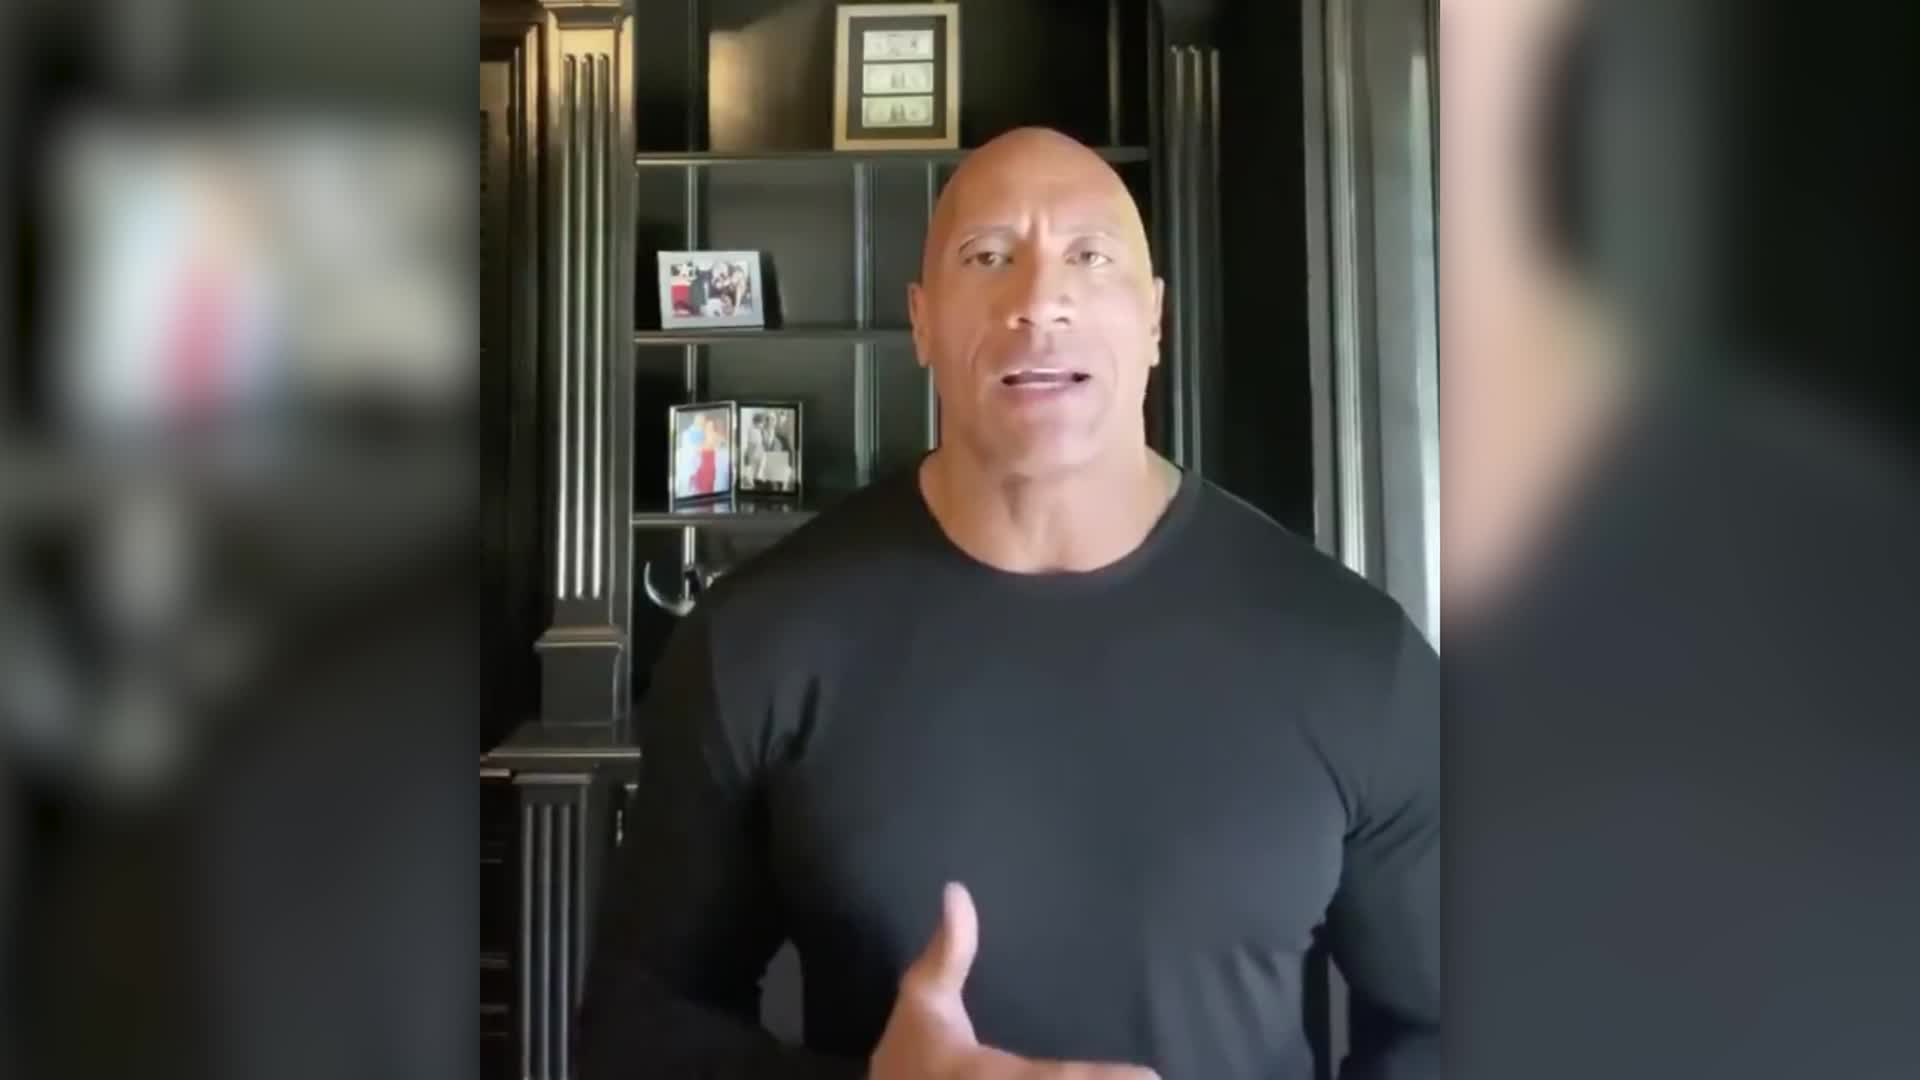 Dwayne Johnson makes powerful plea for leadership